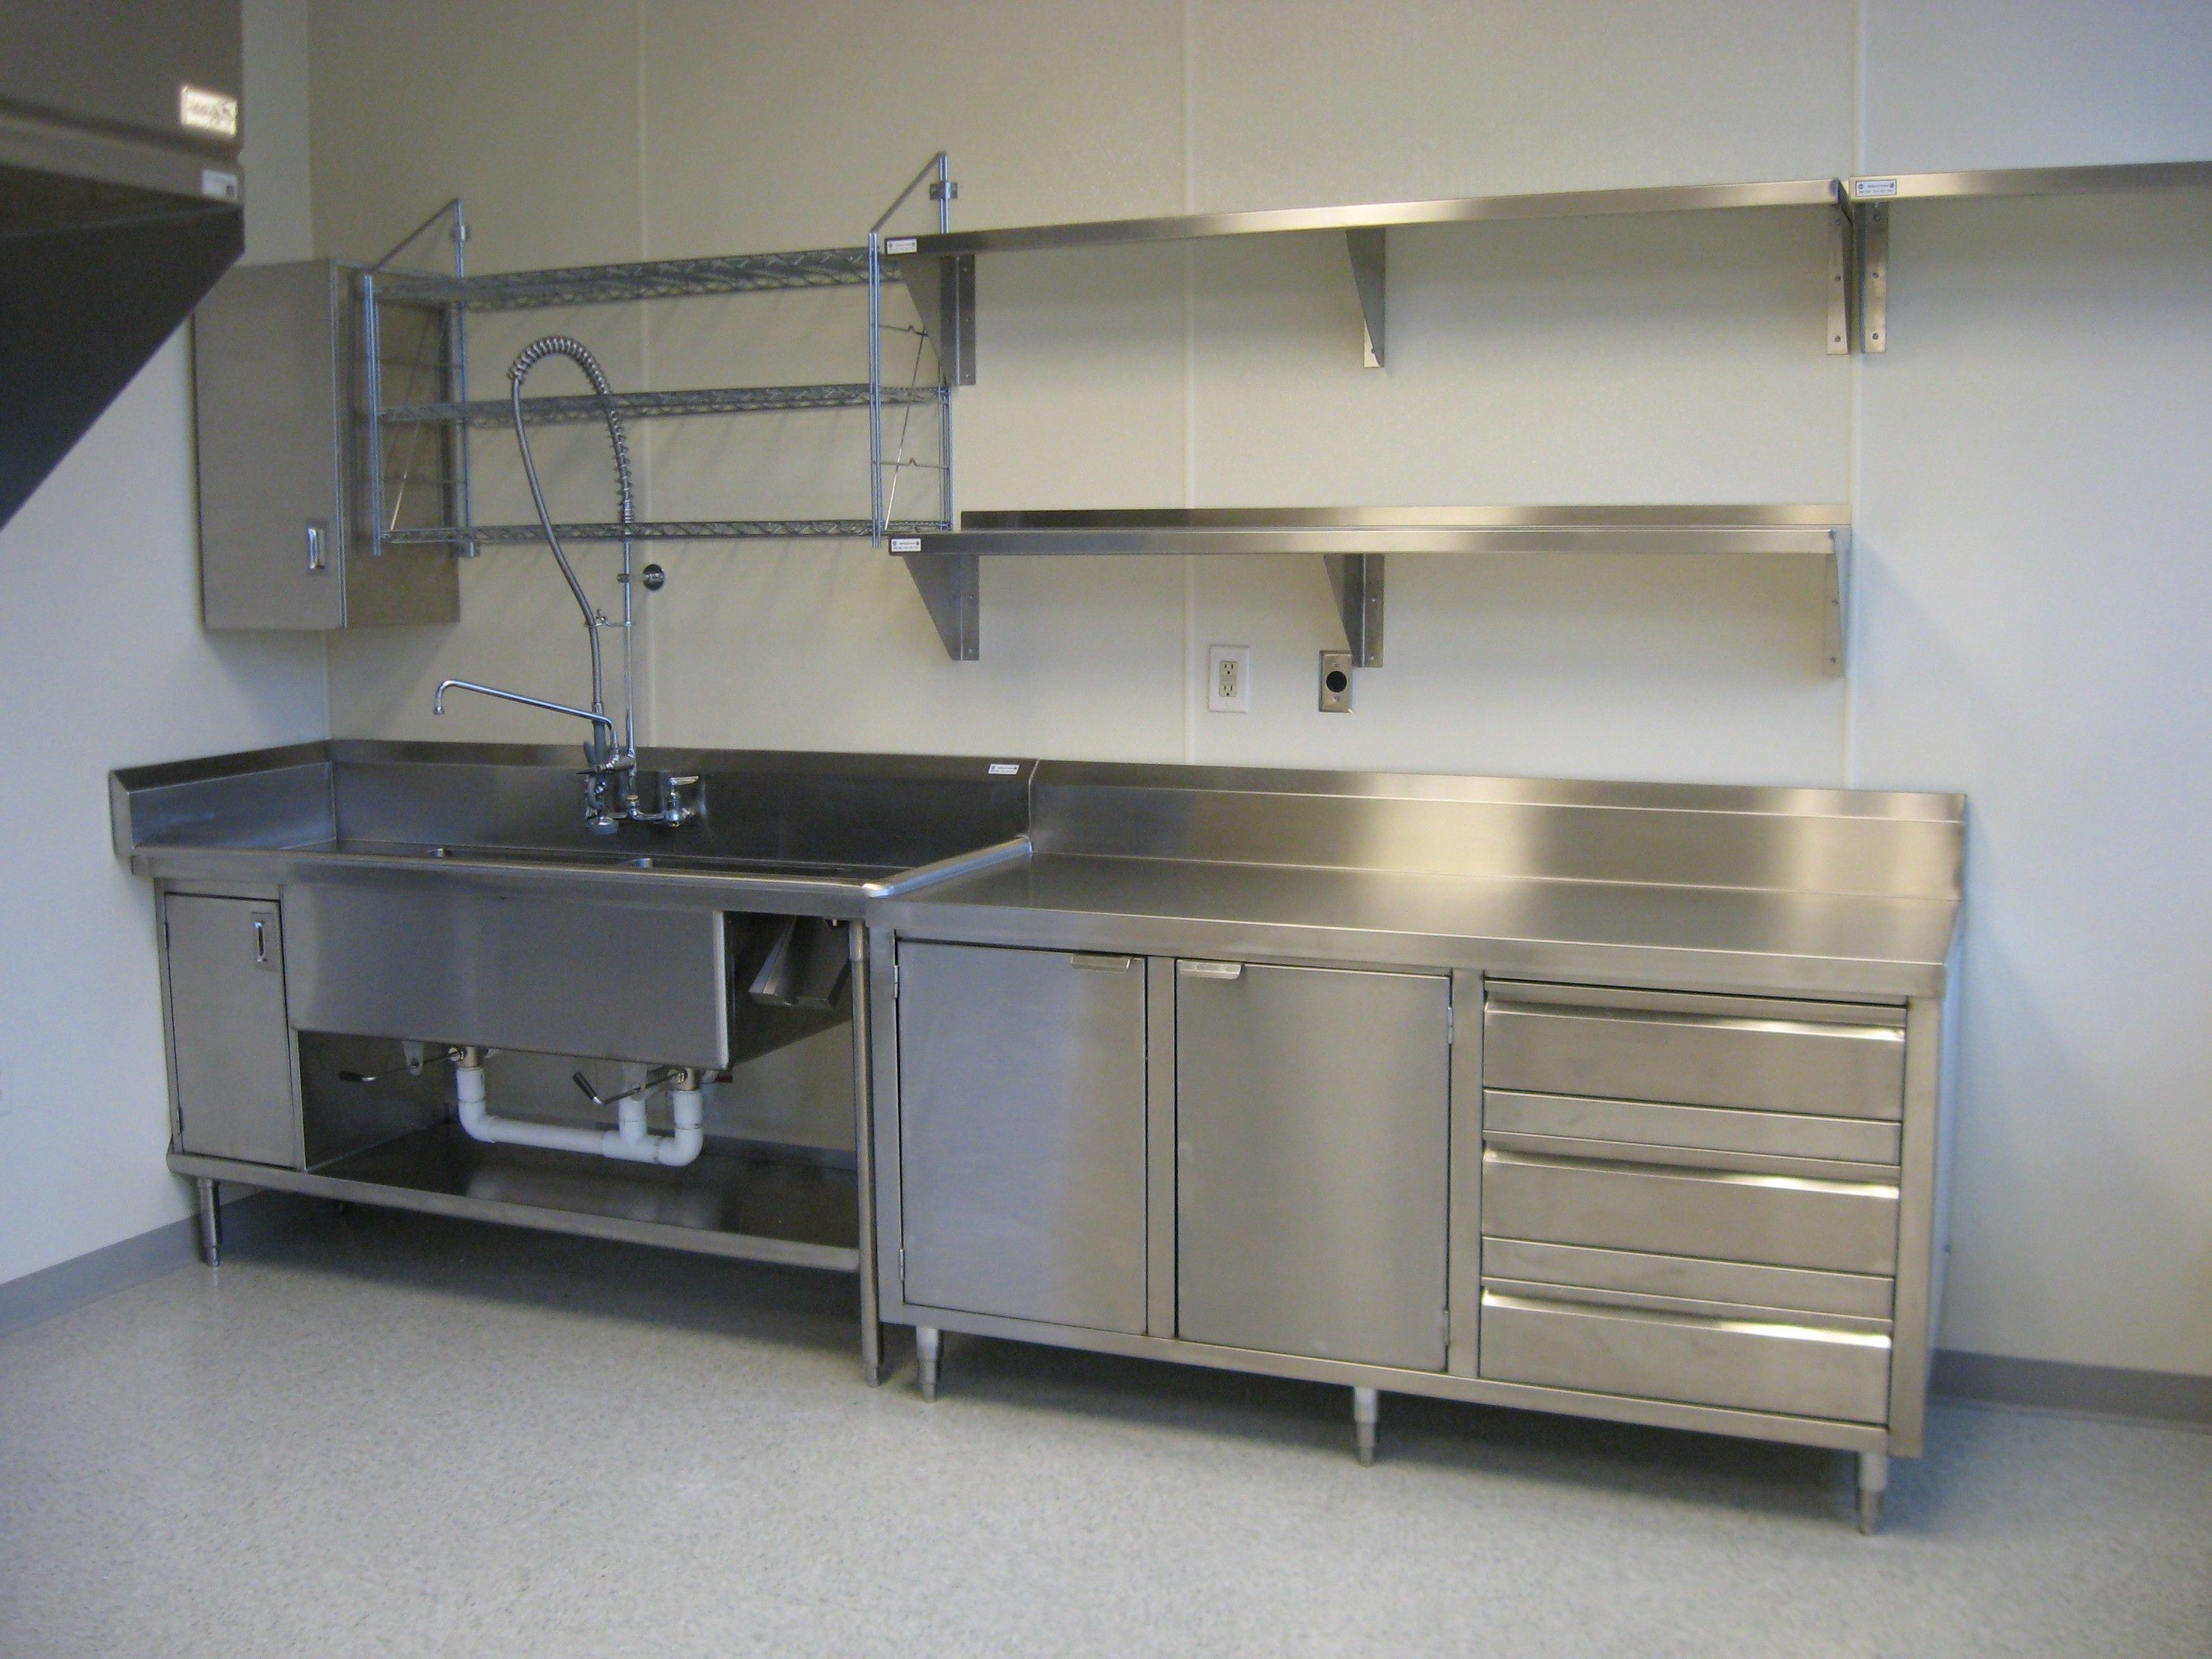 Restaurant Kitchen Shelving shelving stainless steel fitted units commercial kitchen large